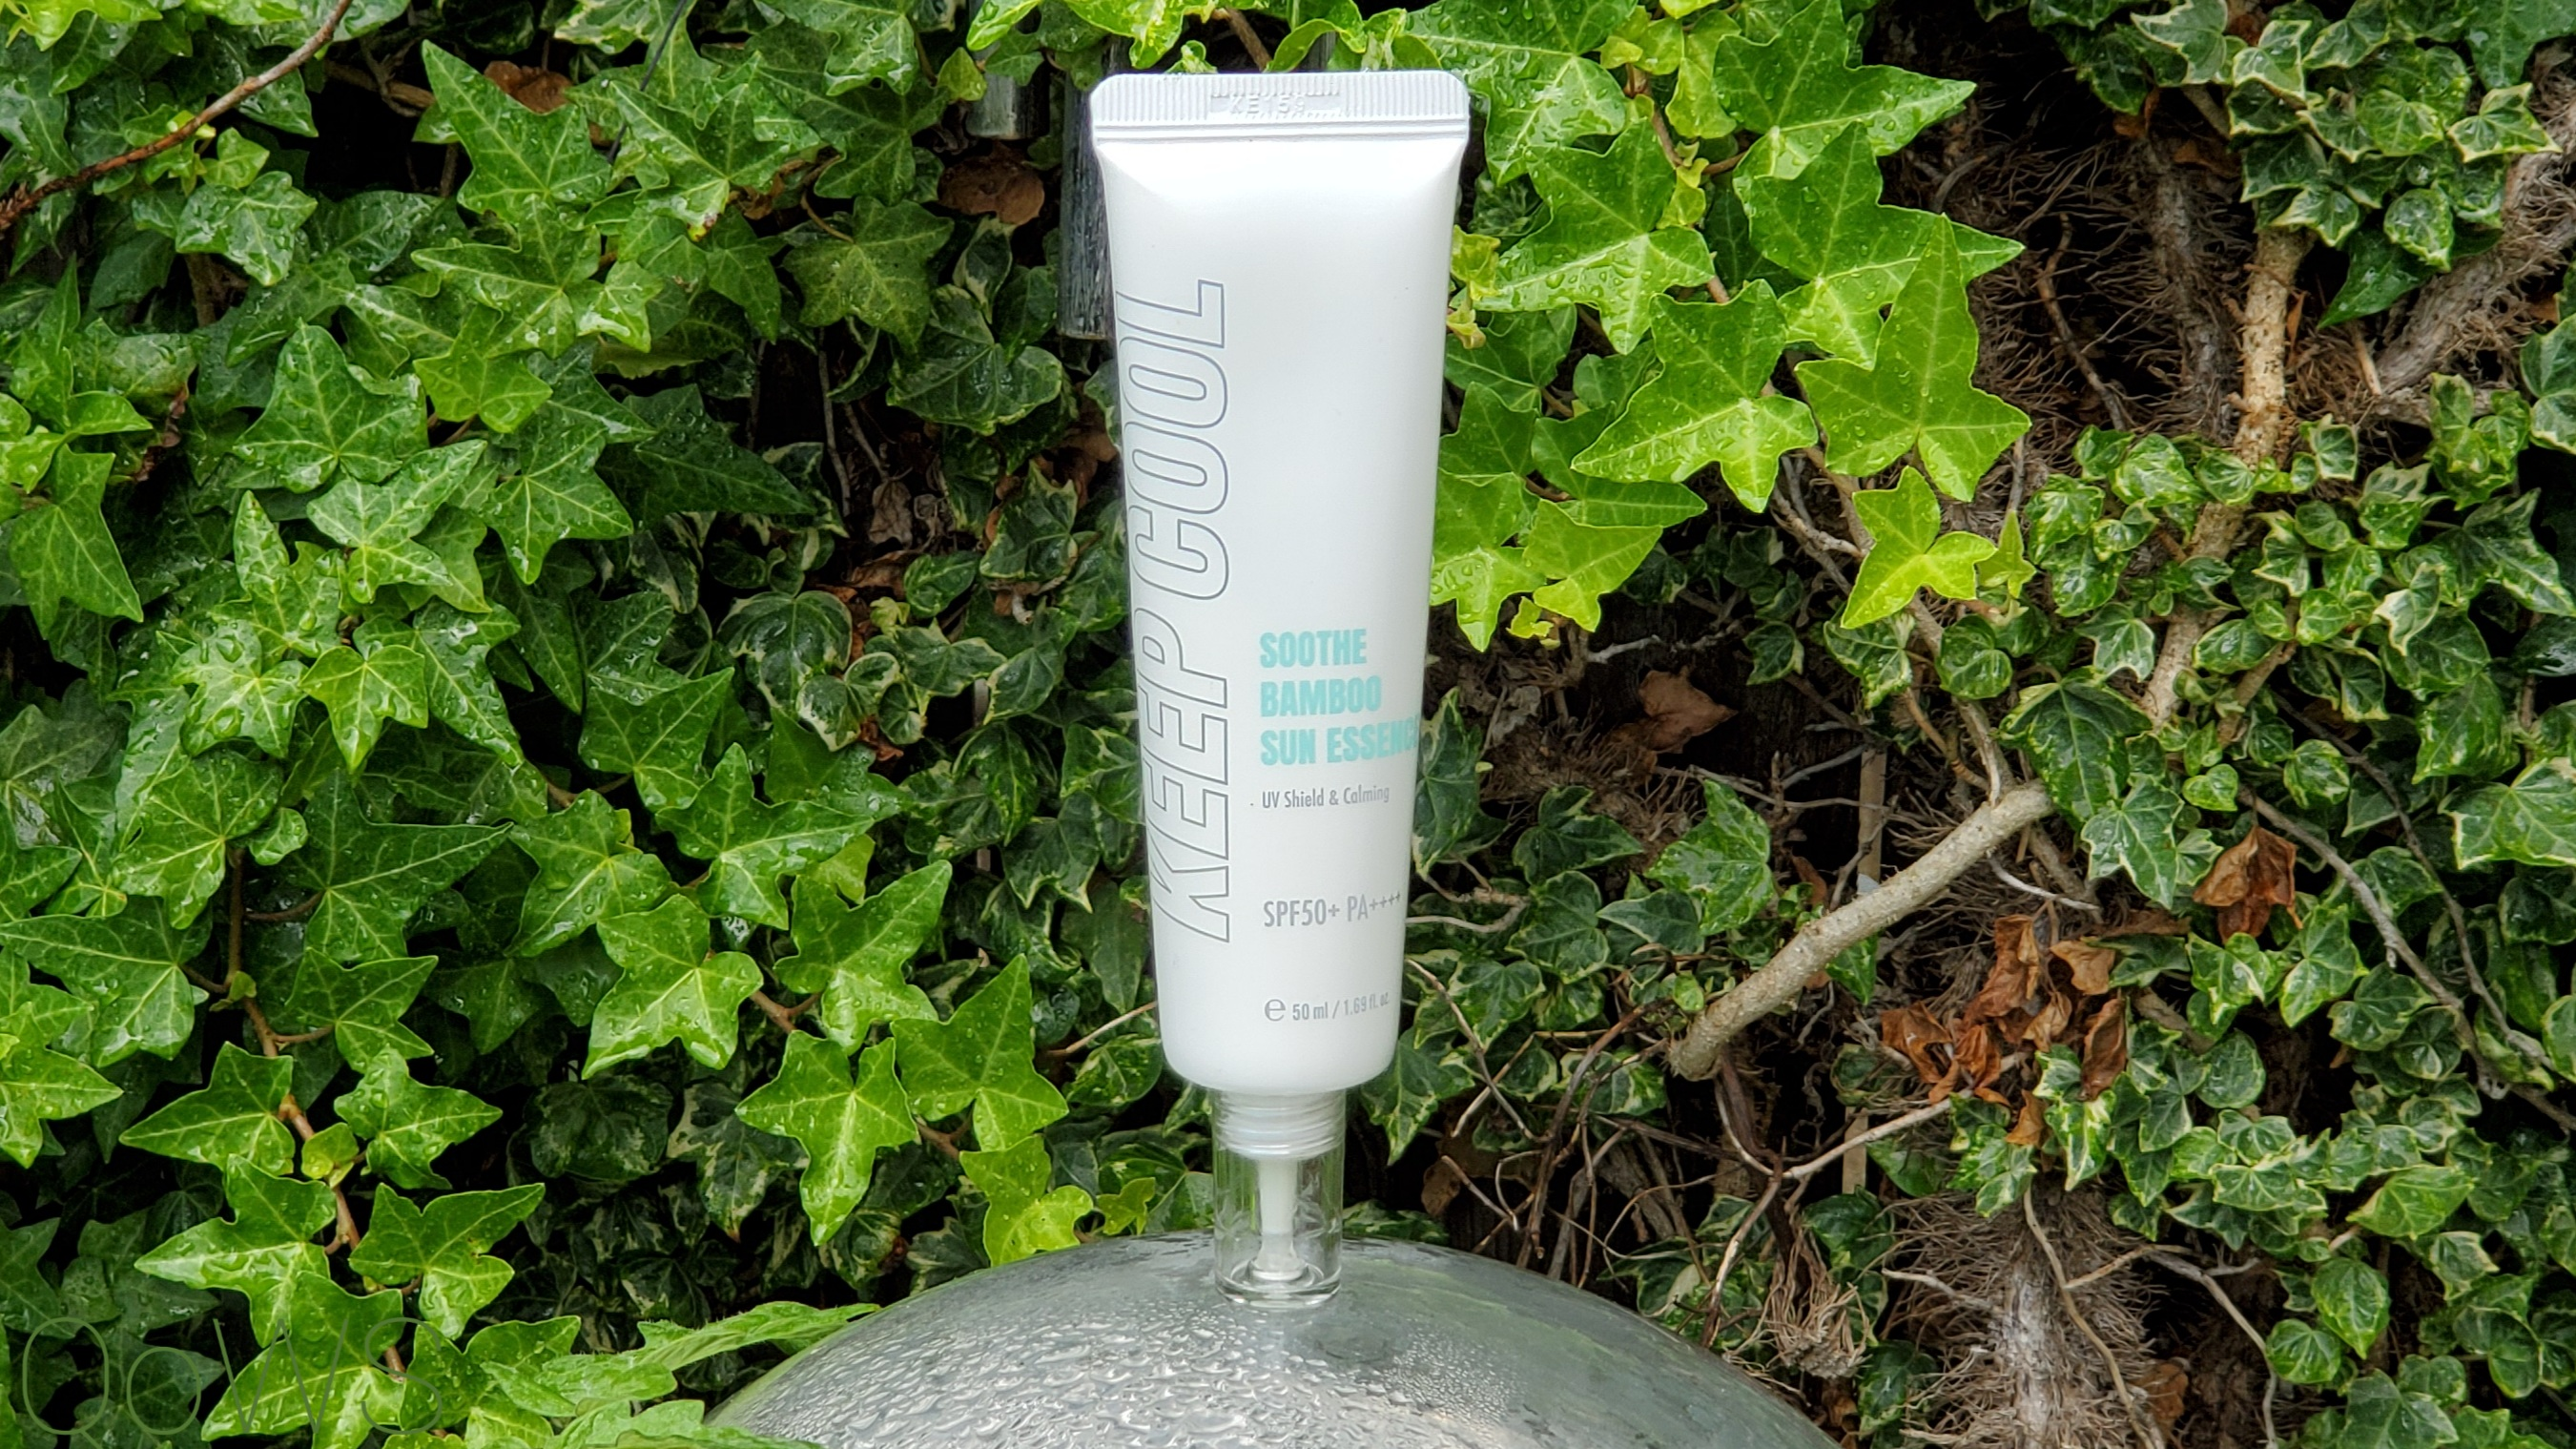 keep cool bamboo sun essence review